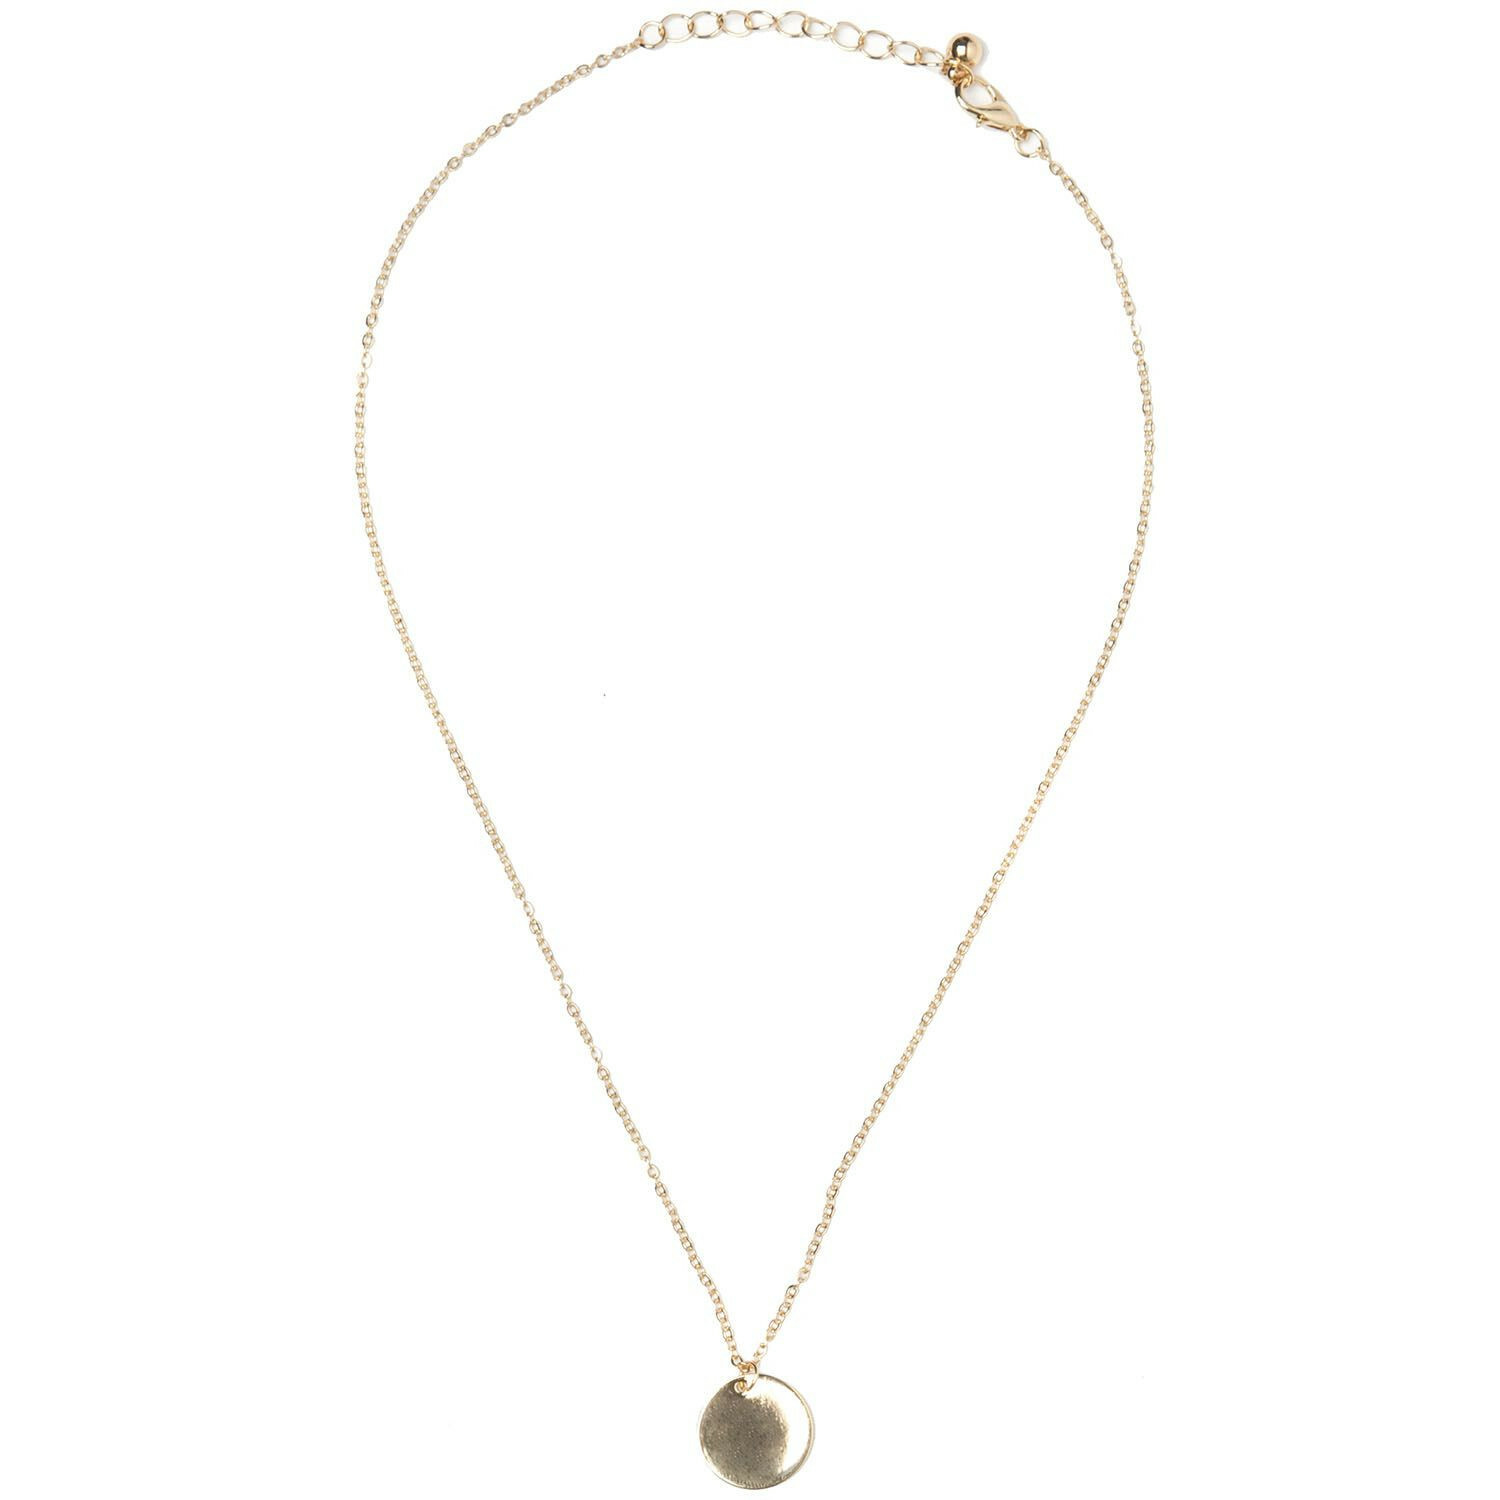 GOLD PLAQUE NECKLACE